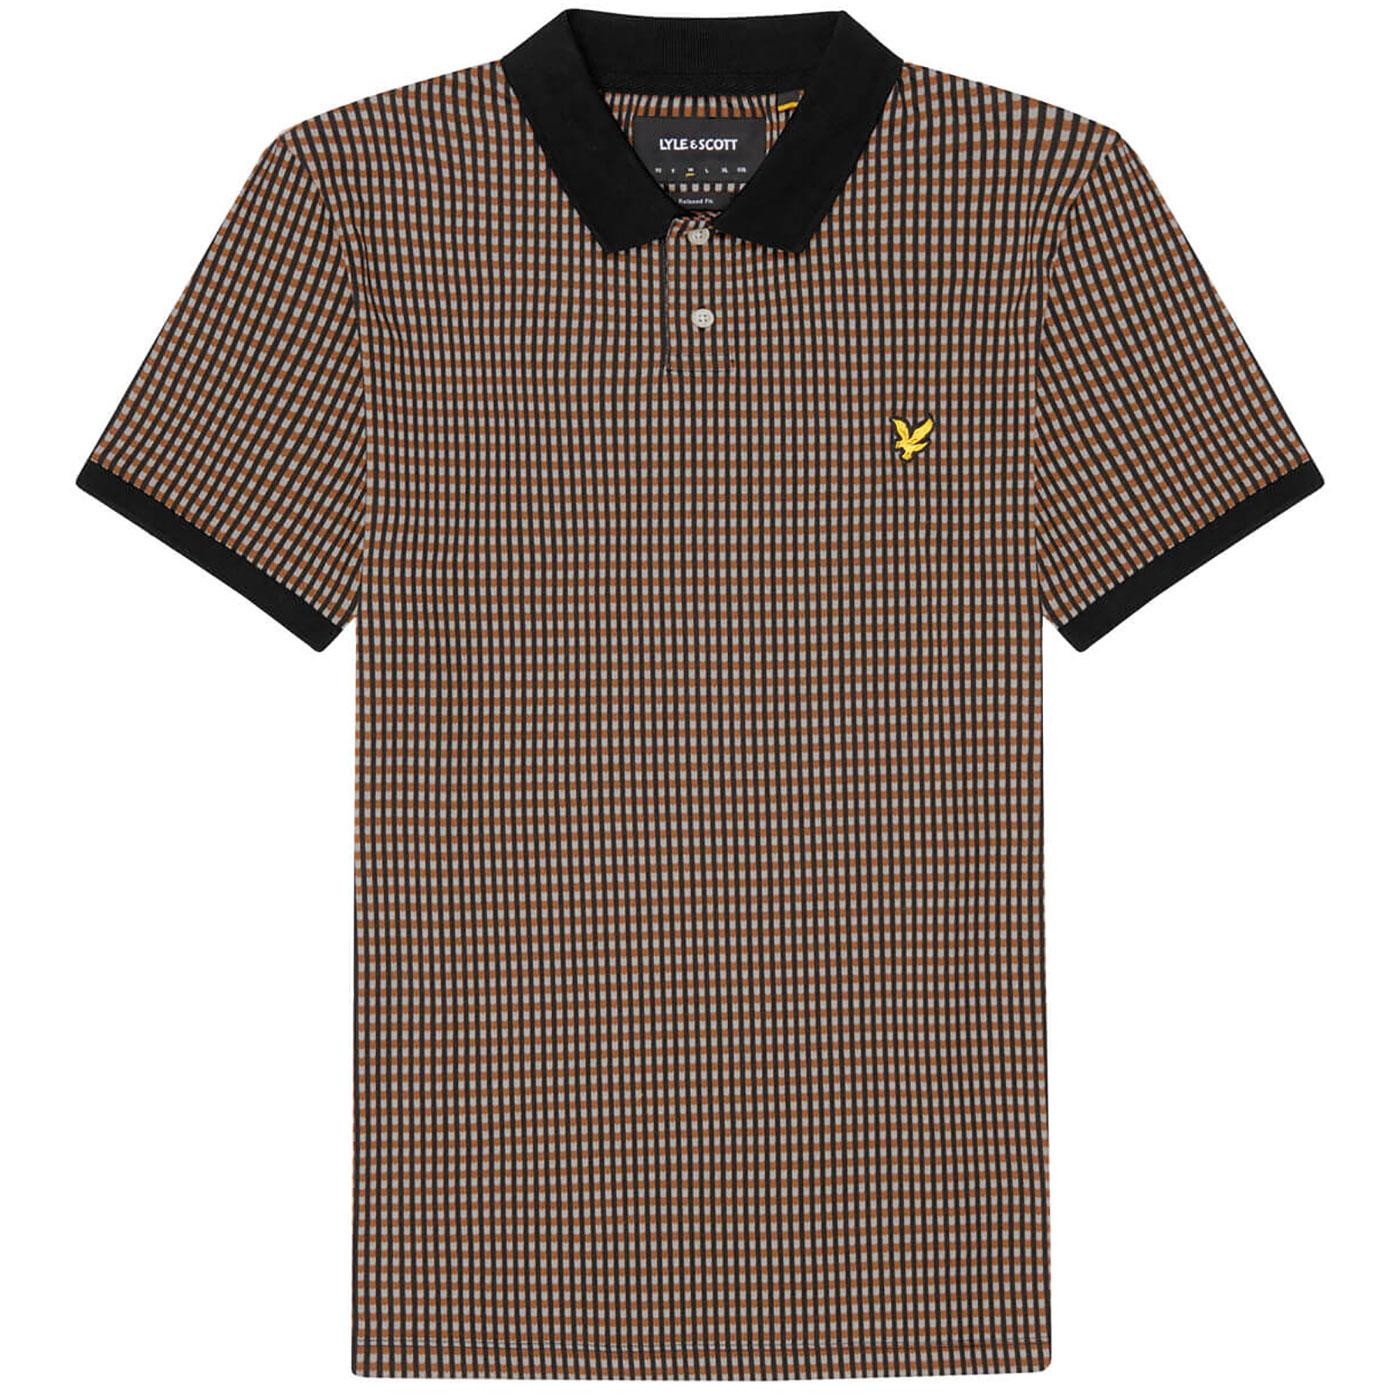 LYLE & SCOTT Retro Repeat Polo Top (Tawny Brown)